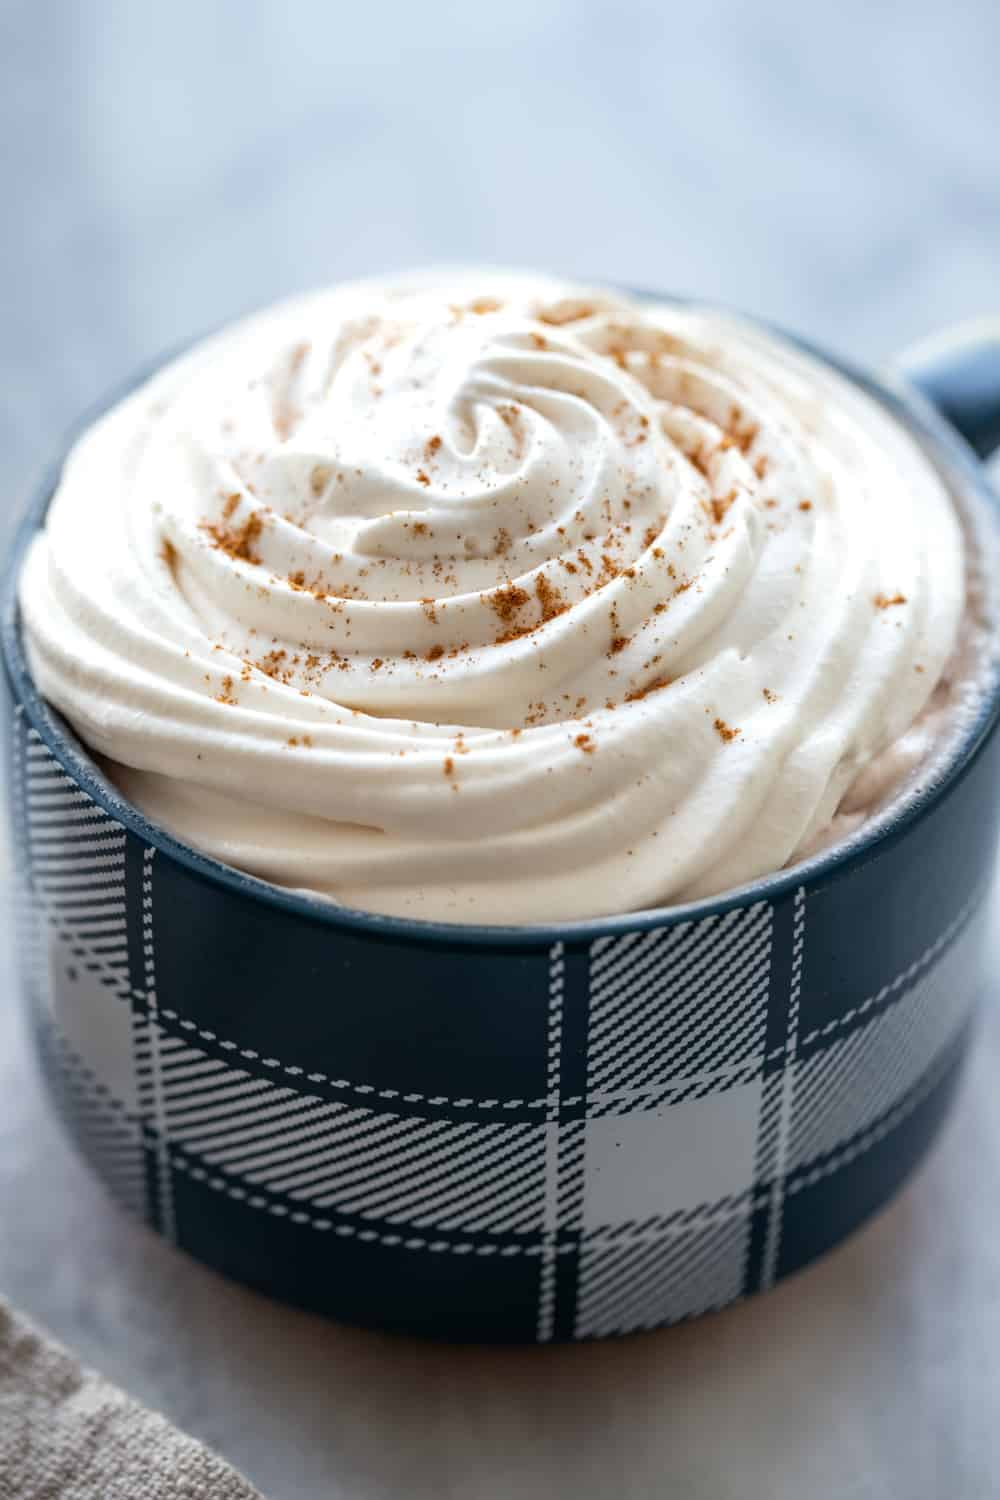 Coffee topped with homemade whipped cream in a blue mug